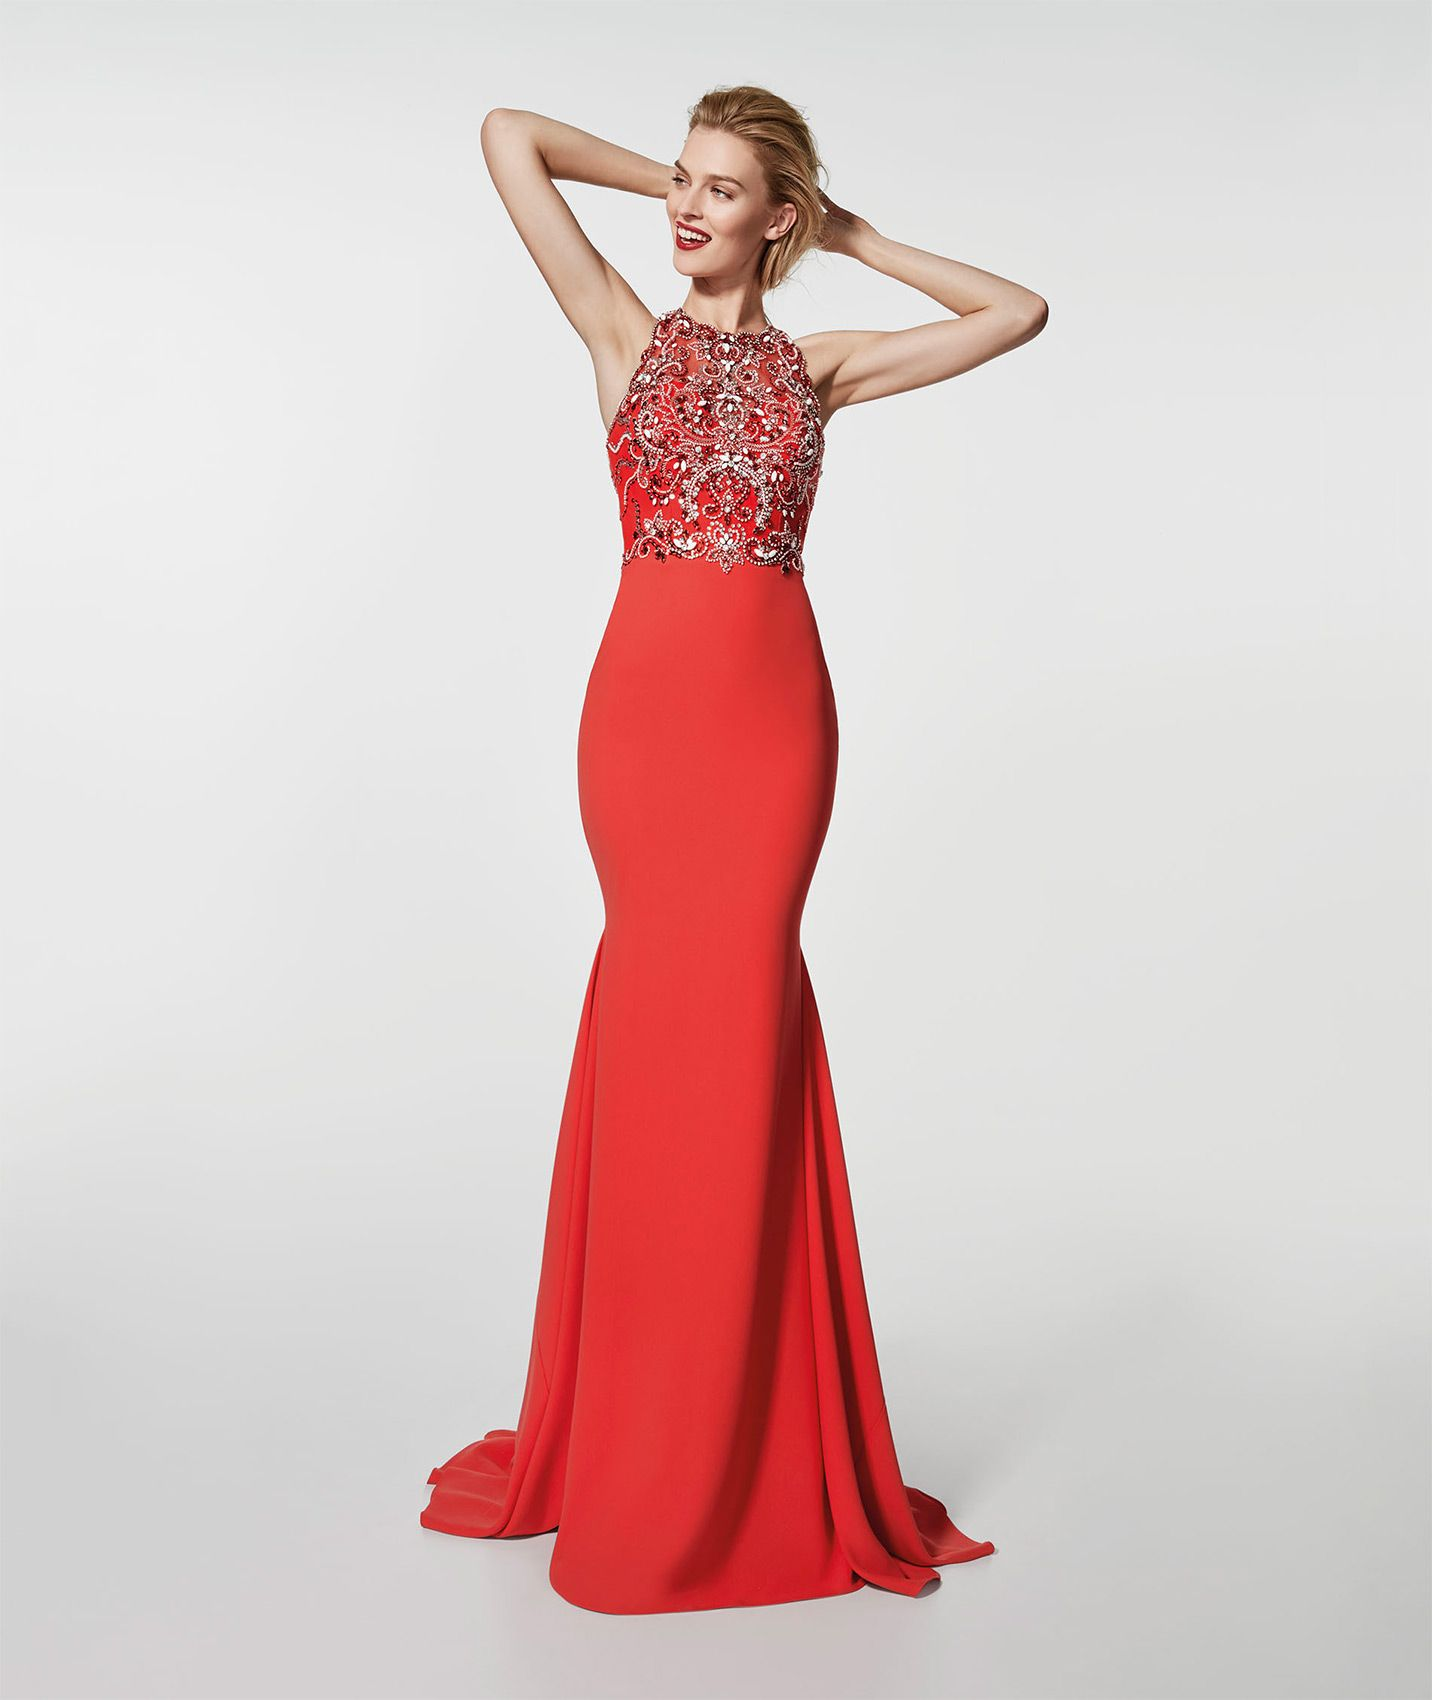 Pin by enia ruiz on cocktail party gown pinterest gowns party